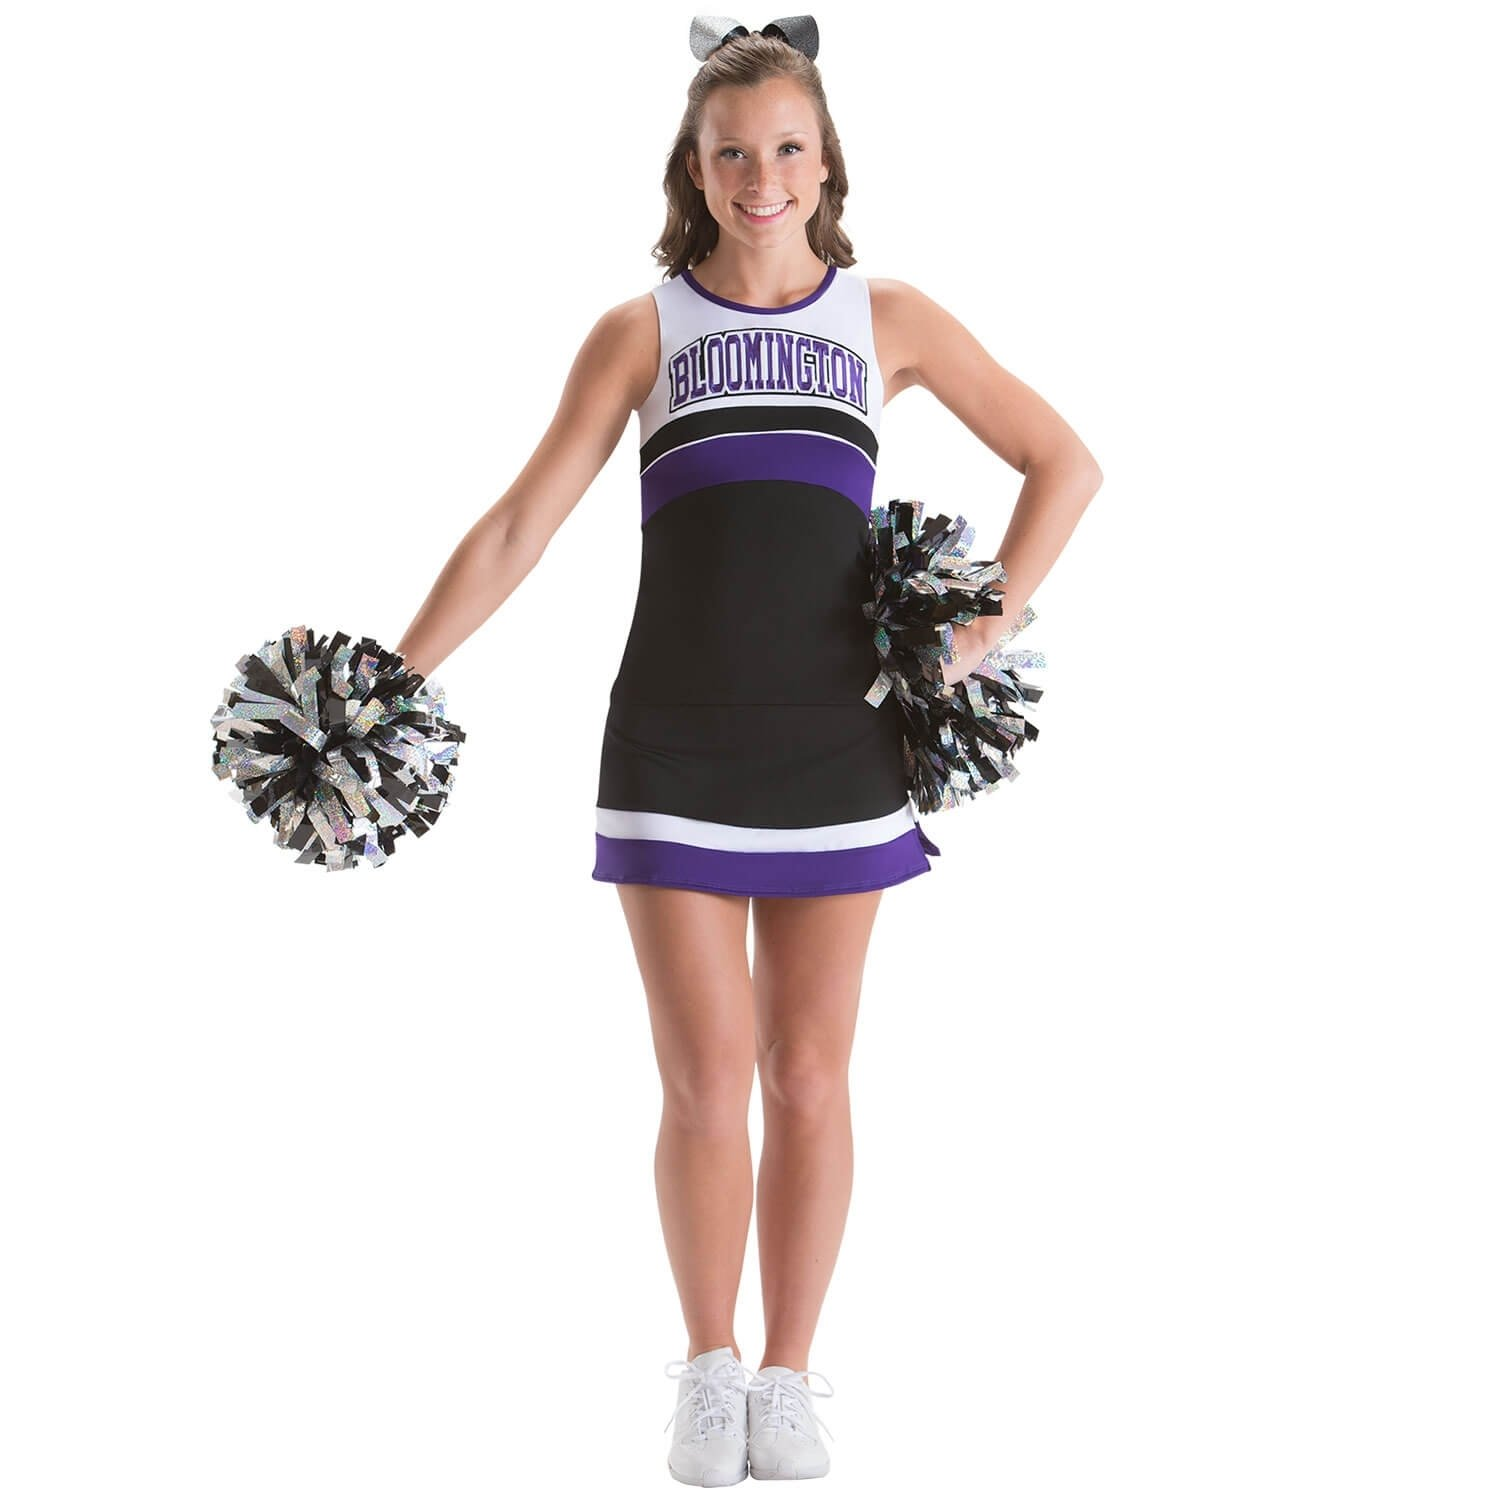 Motionwear Cheerleading Uniforms Stretch Top